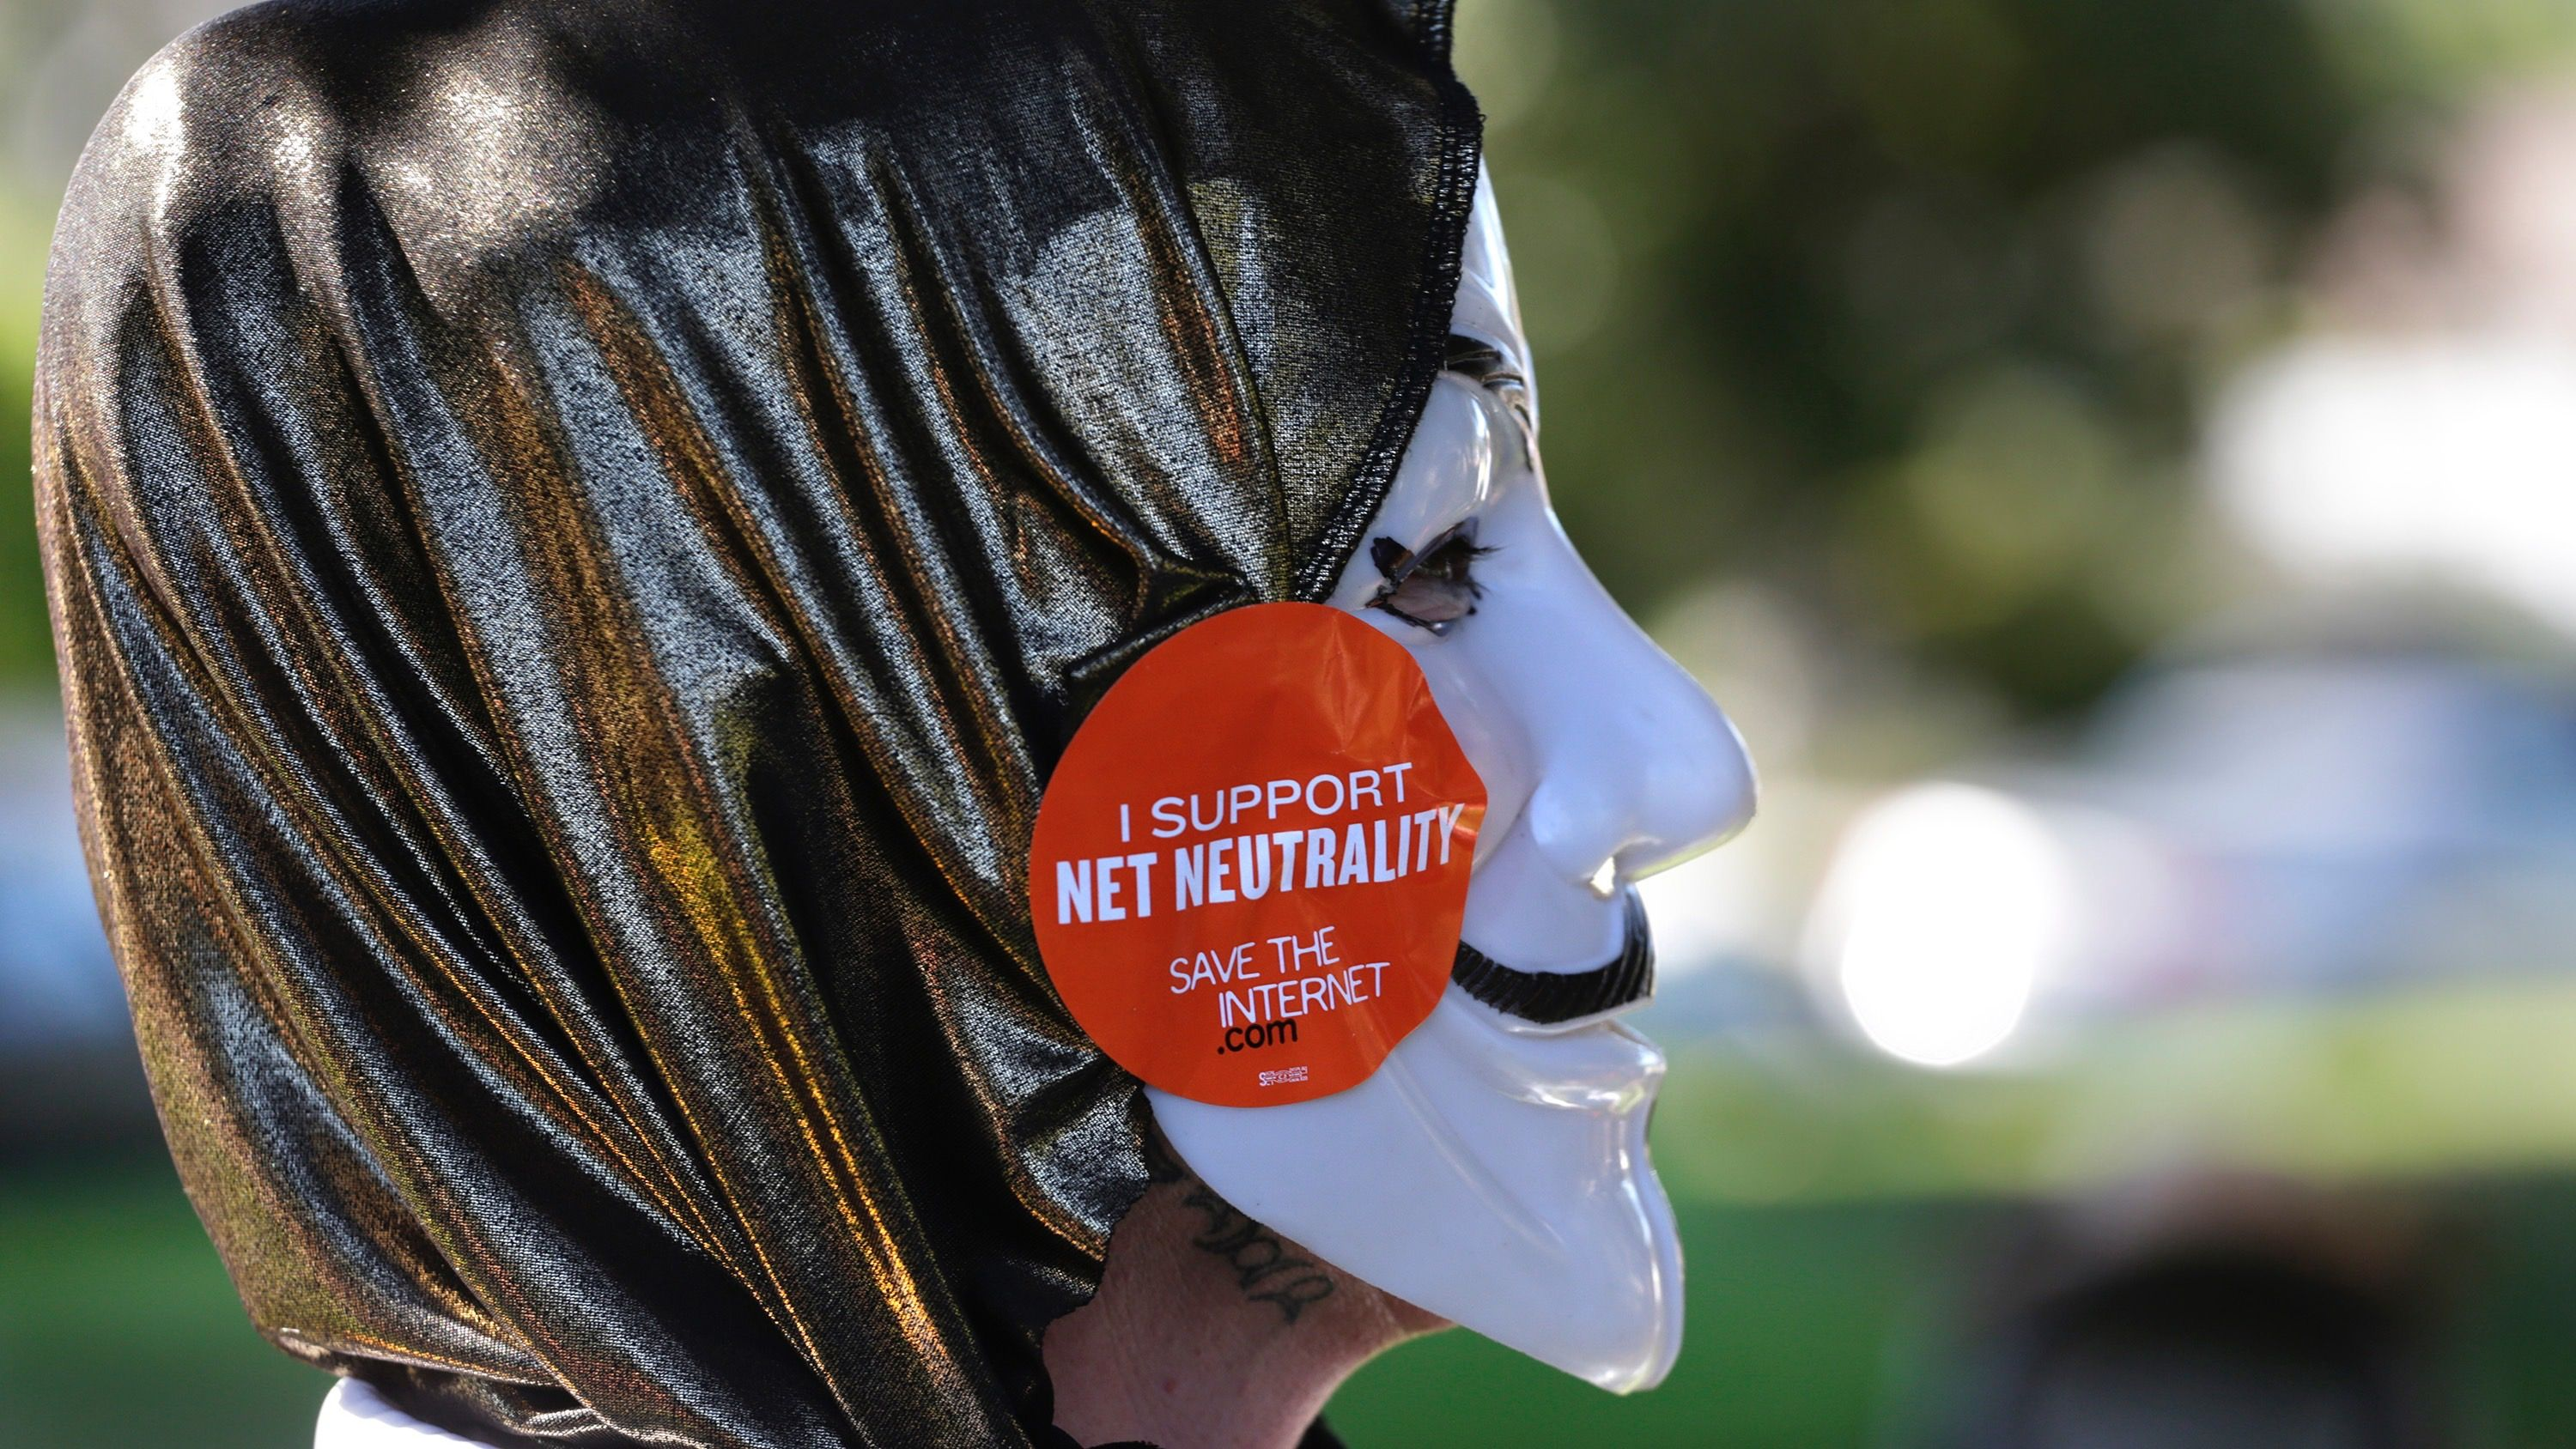 A pro-net neutrality Internet activist attends a rally in the neighborhood where U.S. President Barack Obama attended a fundraiser in Los Angeles, California July 23, 2014.